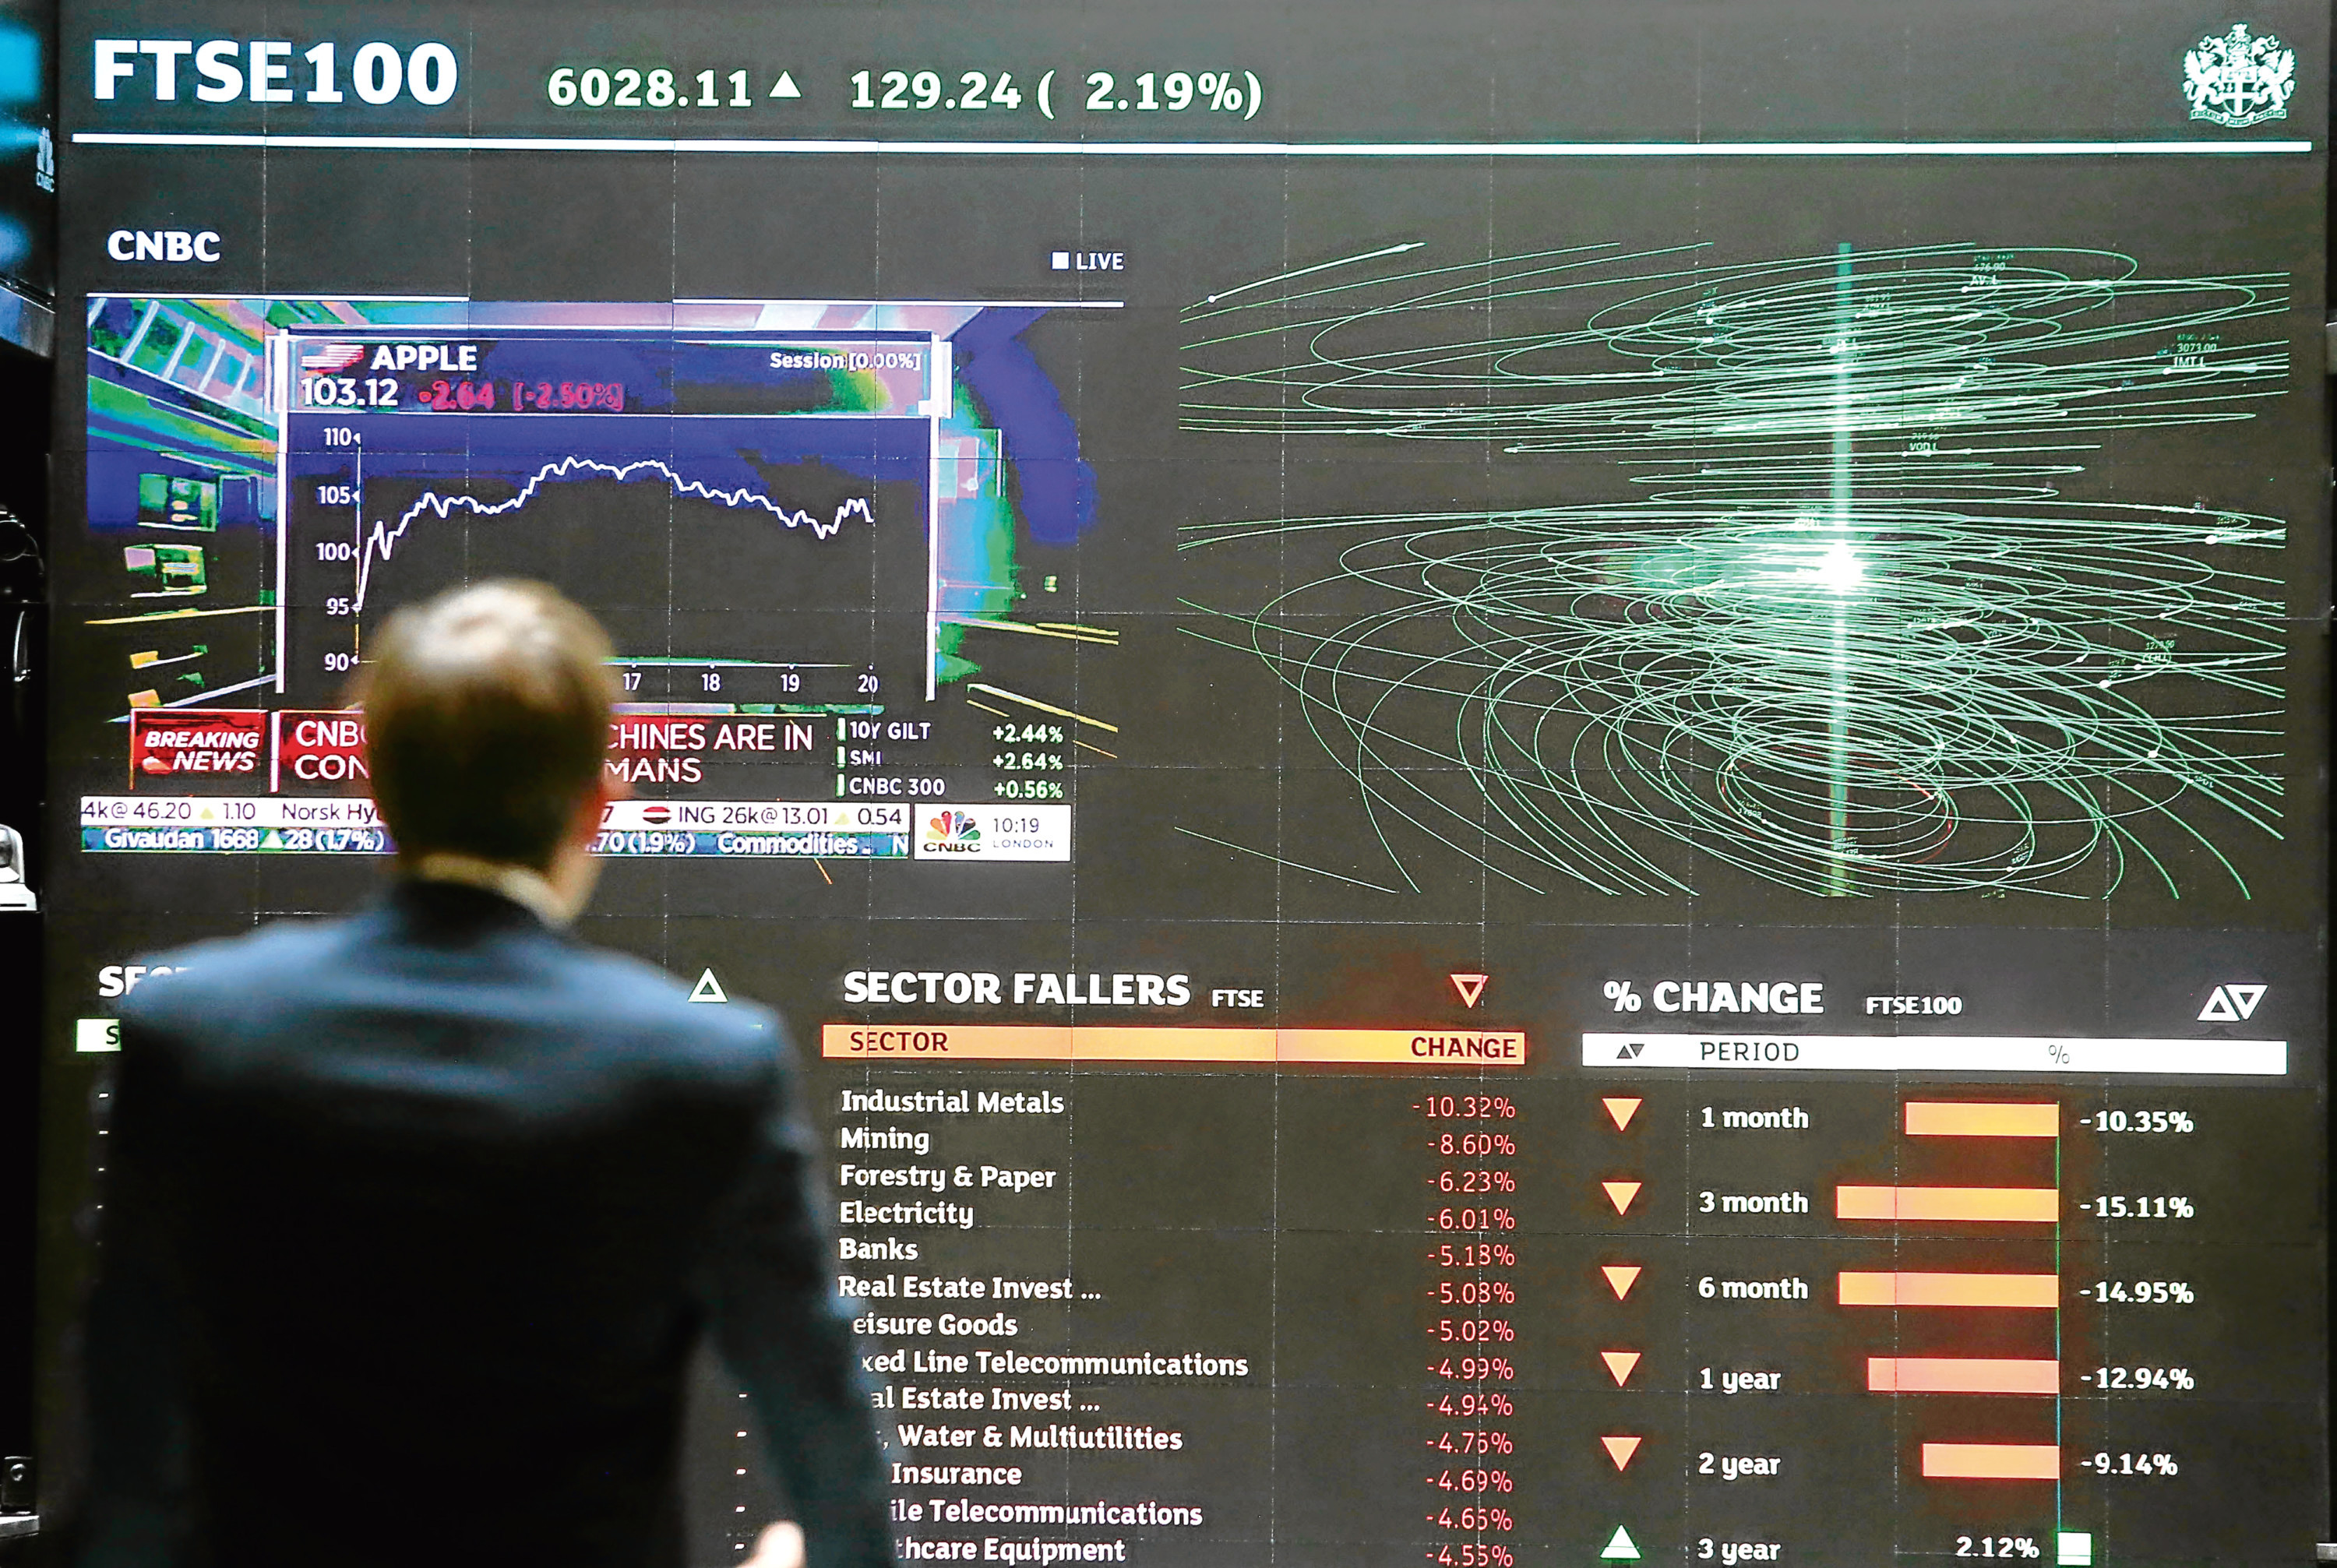 A city worker looks at a stock ticker screen at the London Stock Exchange in the City of London. PRESS ASSOCIATION Photo. Picture date: Tuesday August 25, 2015. The FTSE 100 Index bounced back above the 6,000 mark after surging by nearly 2% as it recovered following one of its worst sessions in recent years. See PA story CITY FTSE. Photo credit should read: Philip Toscano/PA Wire